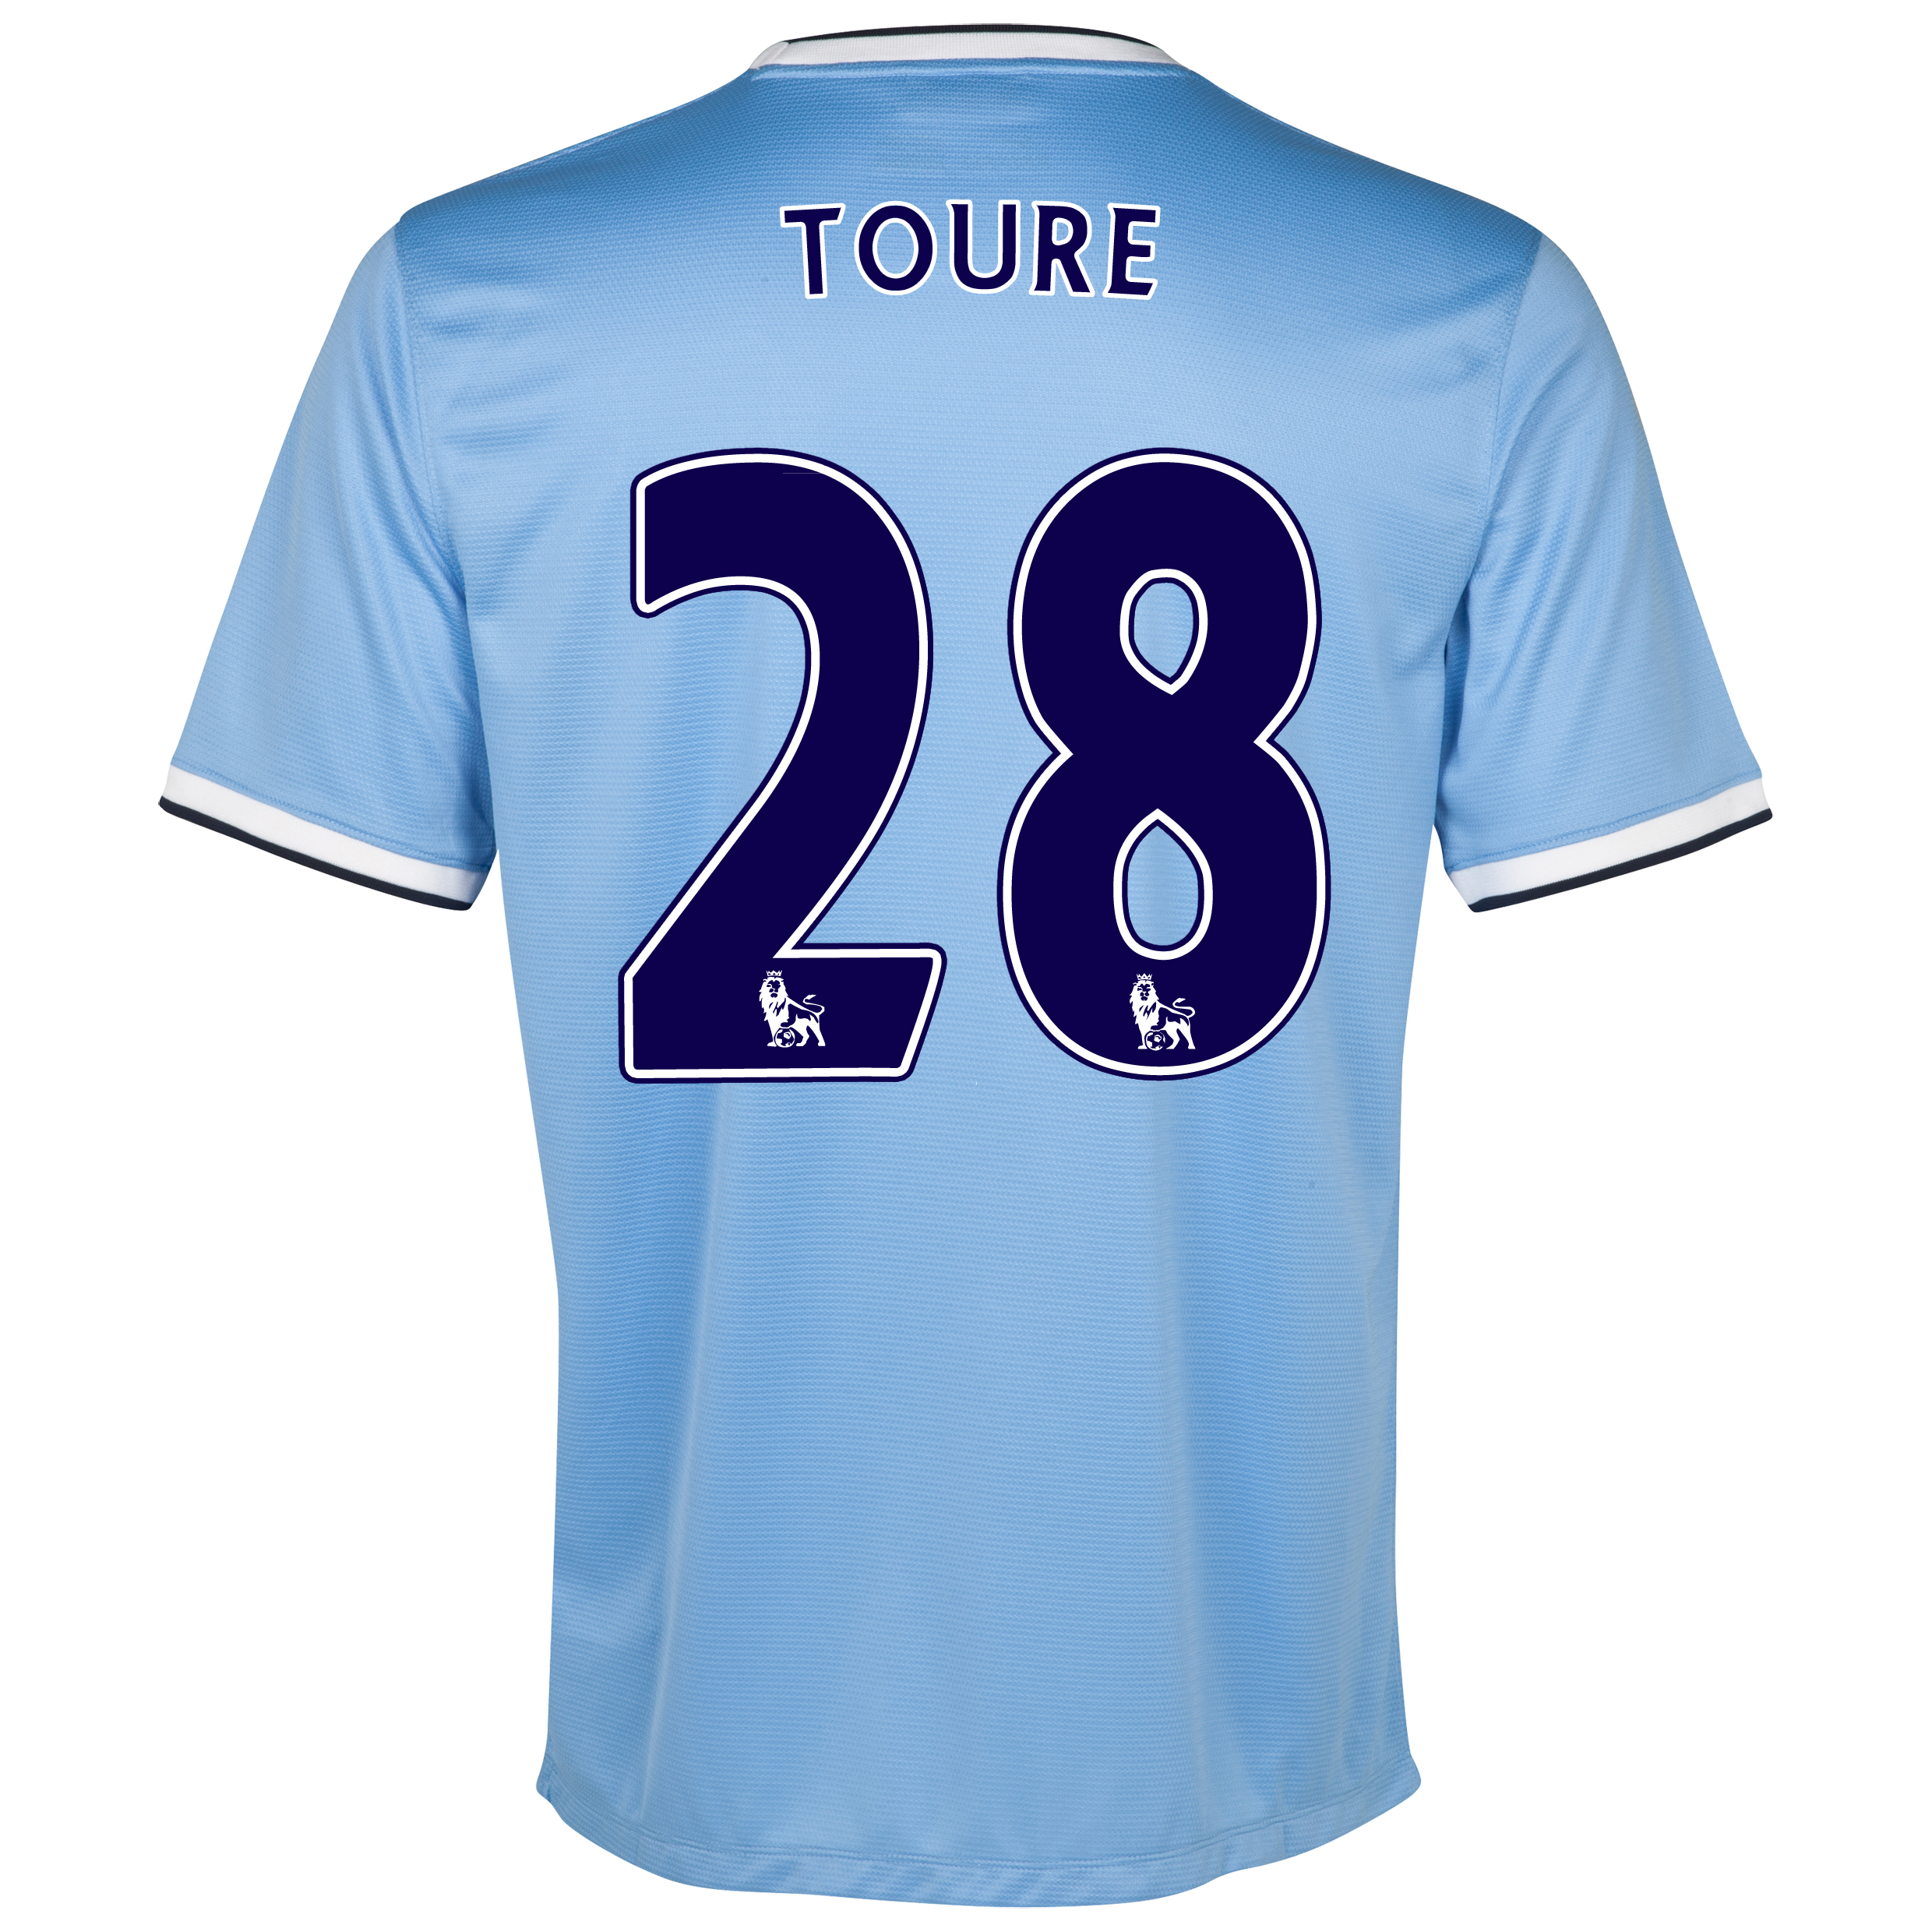 Manchester City Home Shirt 2013/14 with Toure 28 printing